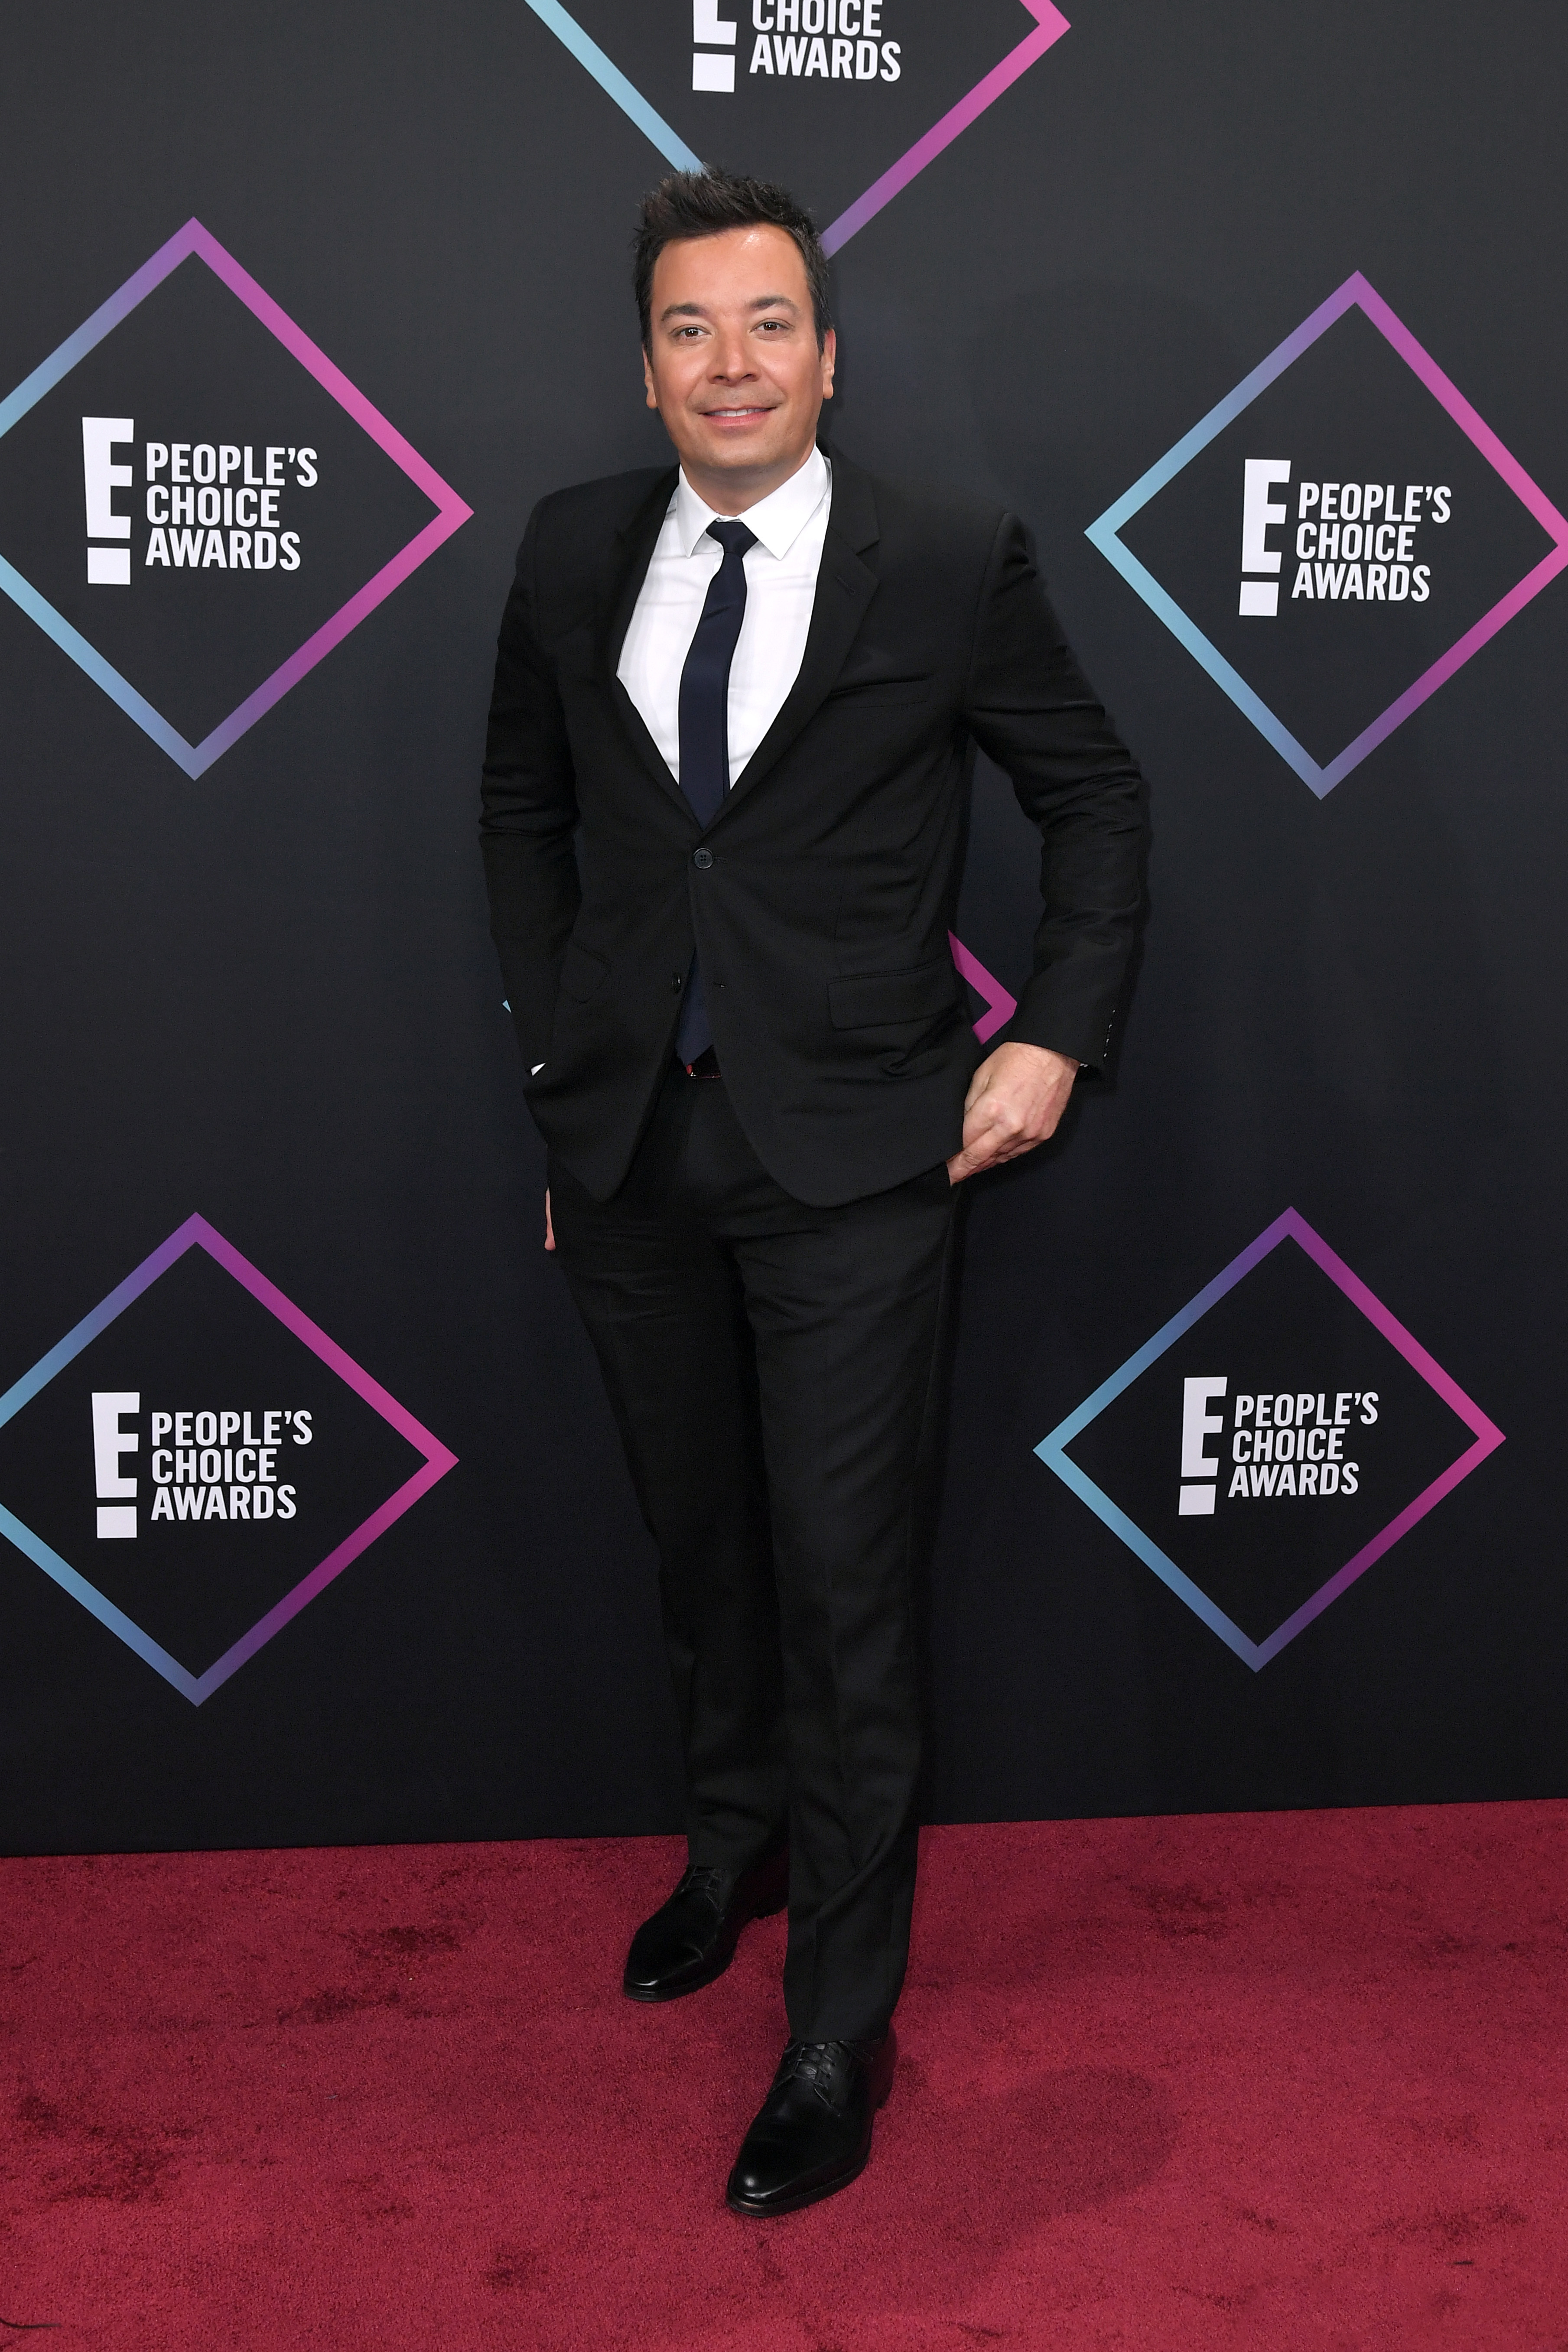 Jimmy Fallon attends the People's Choice Awards in Los Angeles on Nov. 11, 2018.